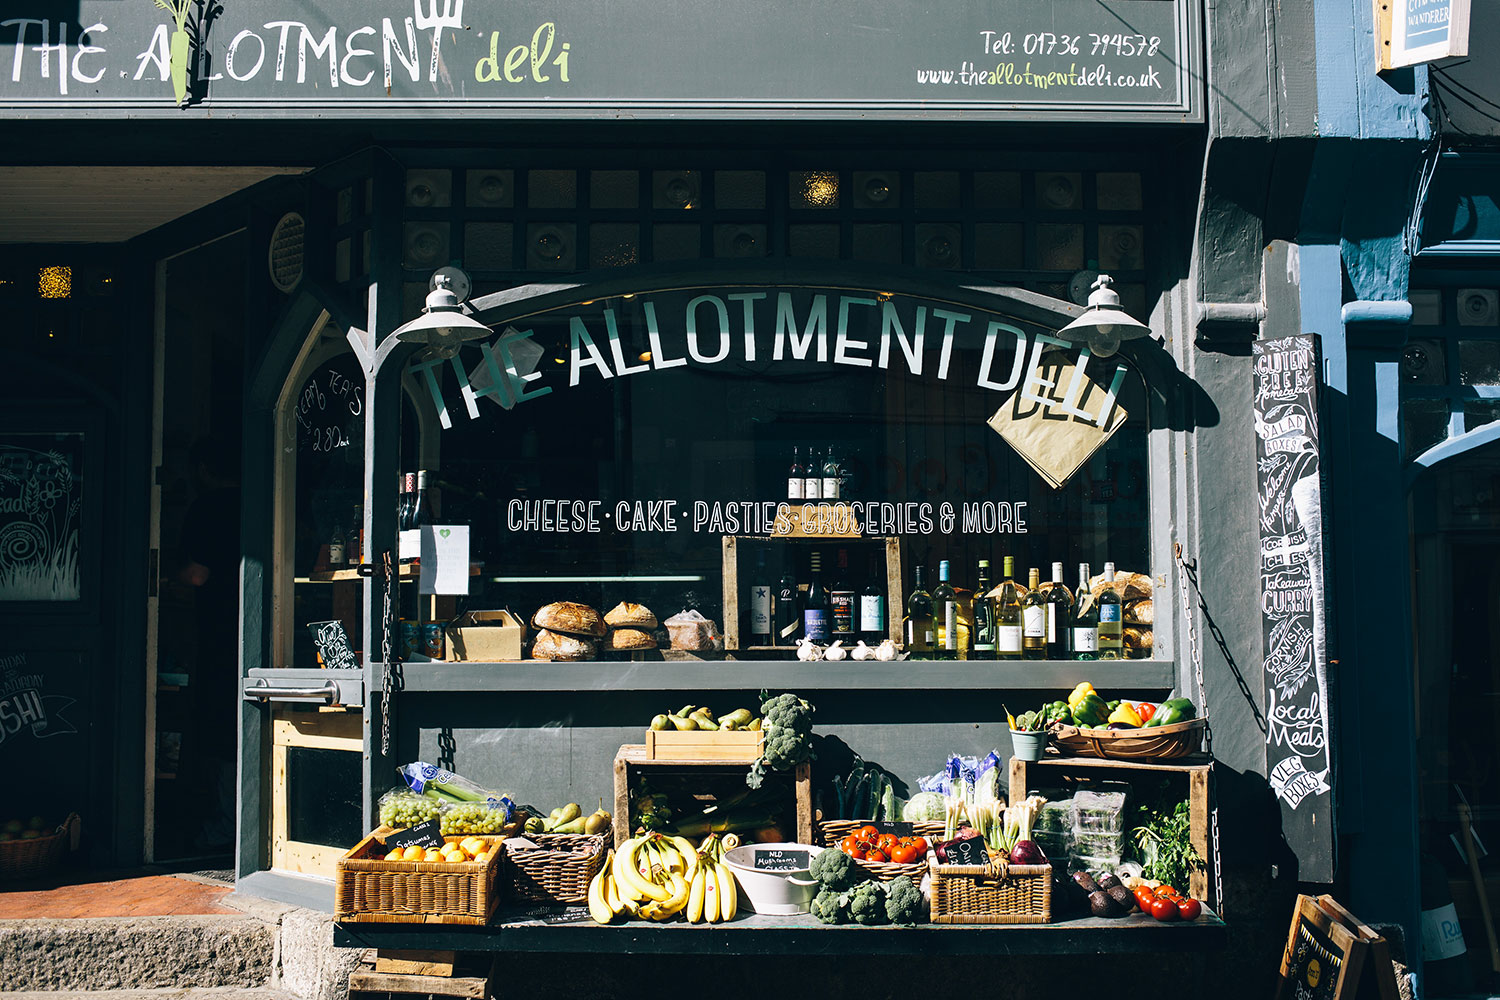 The Allotment Deli display of fruit and vegetables